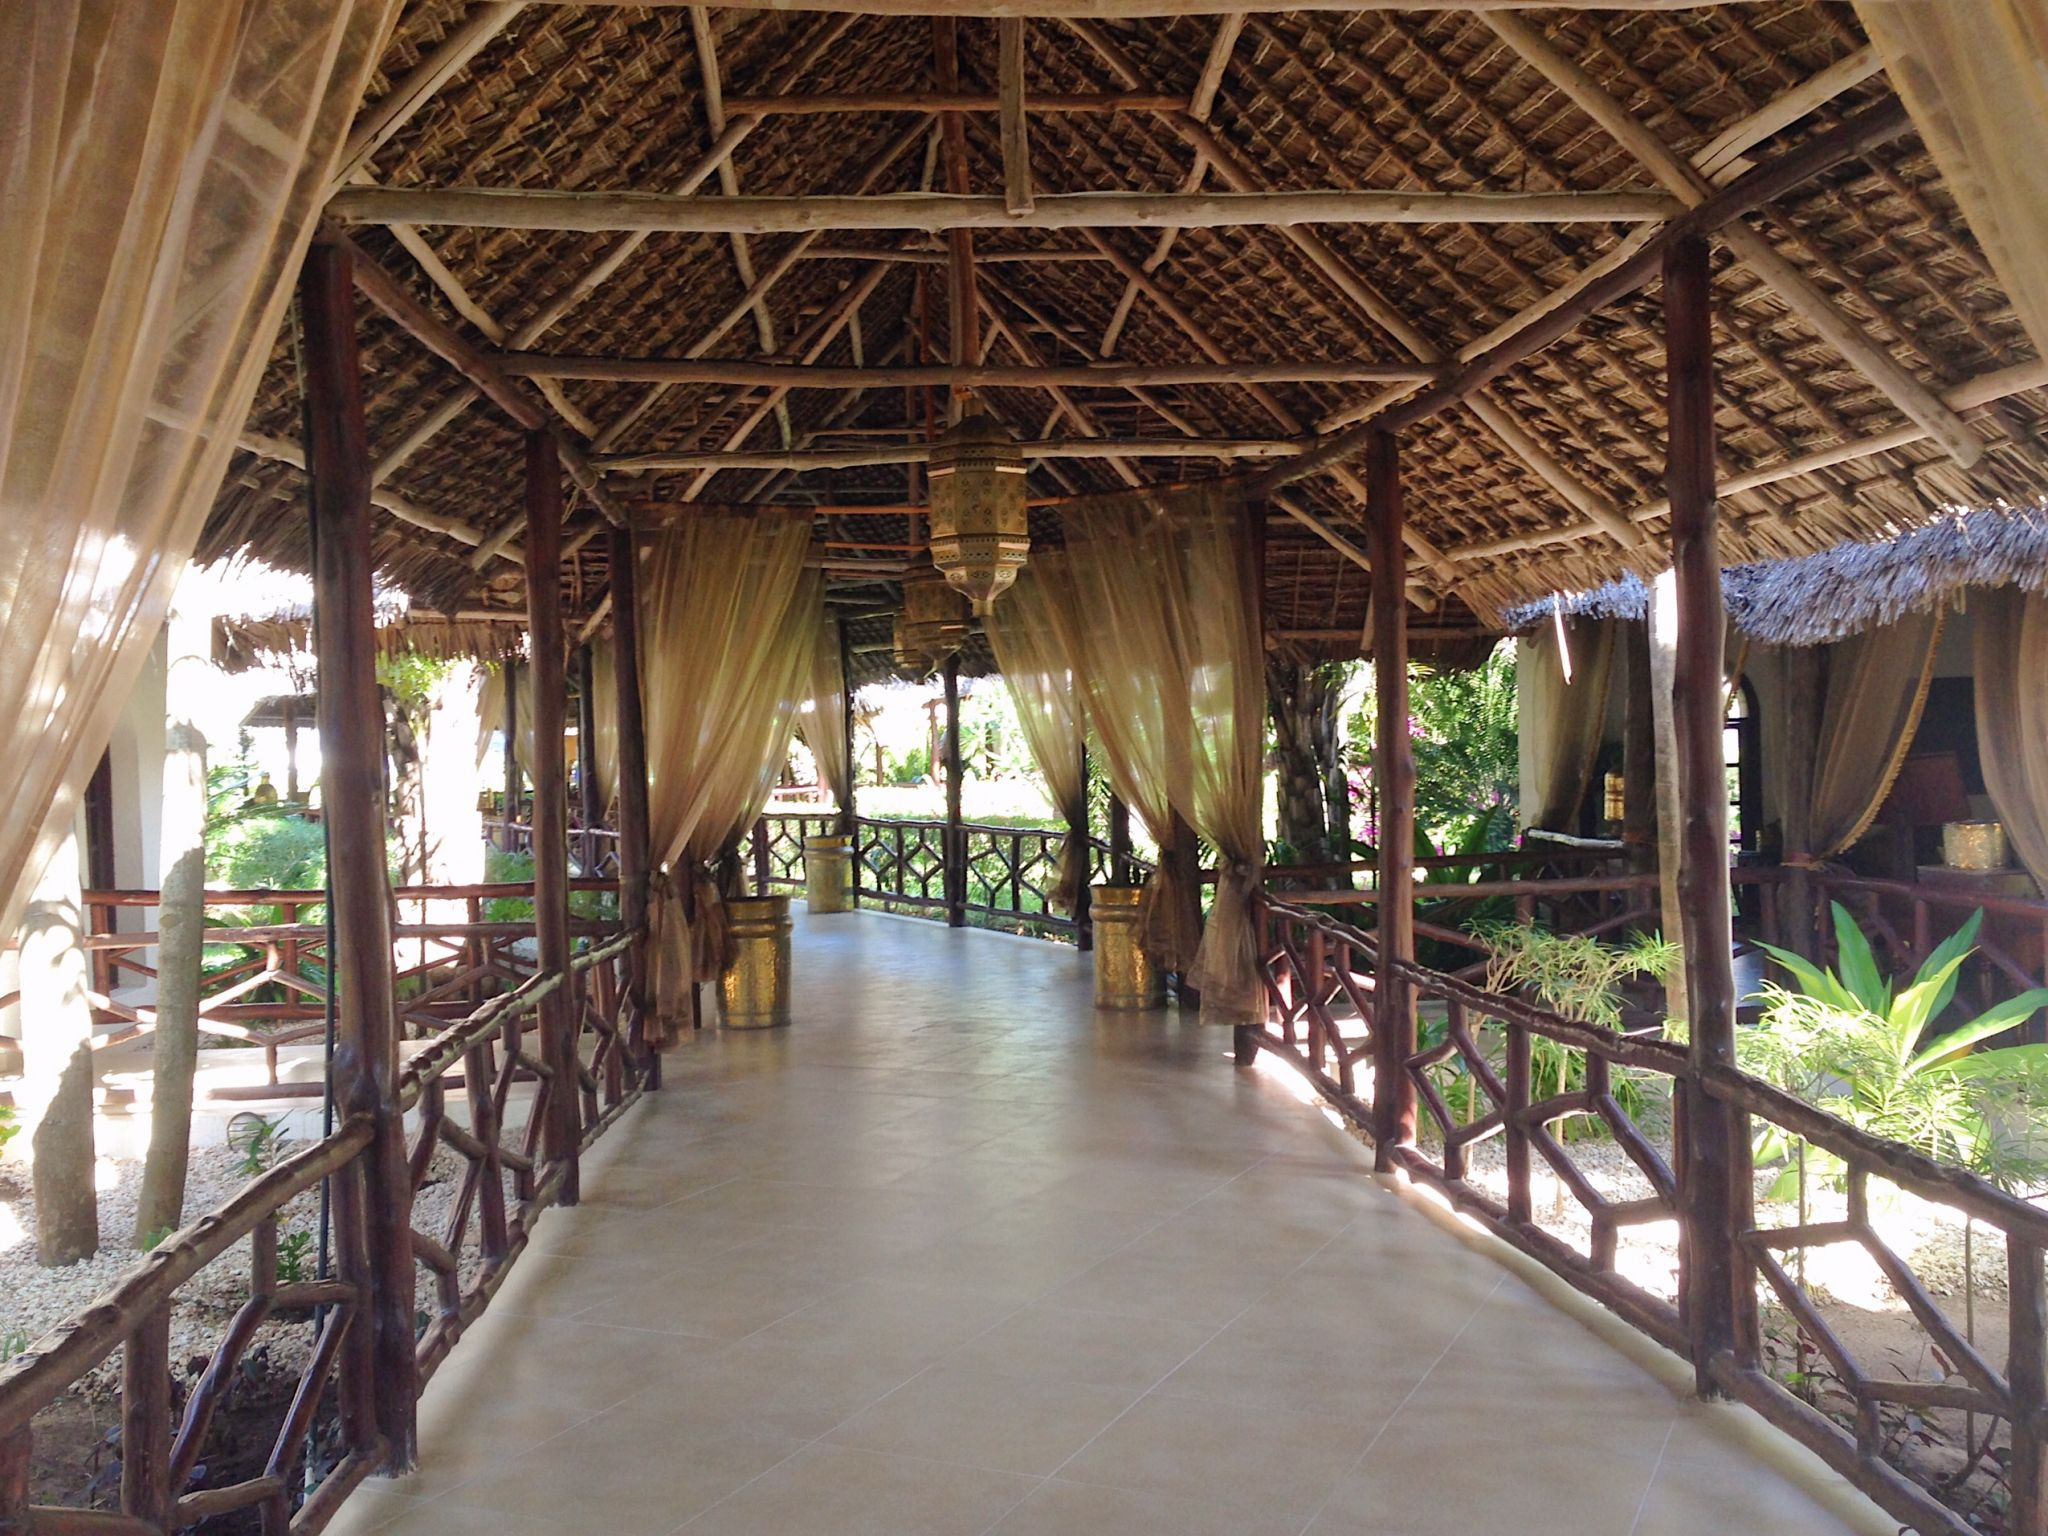 Image of entrance of Dongwe Club Hotel in Zanzibar